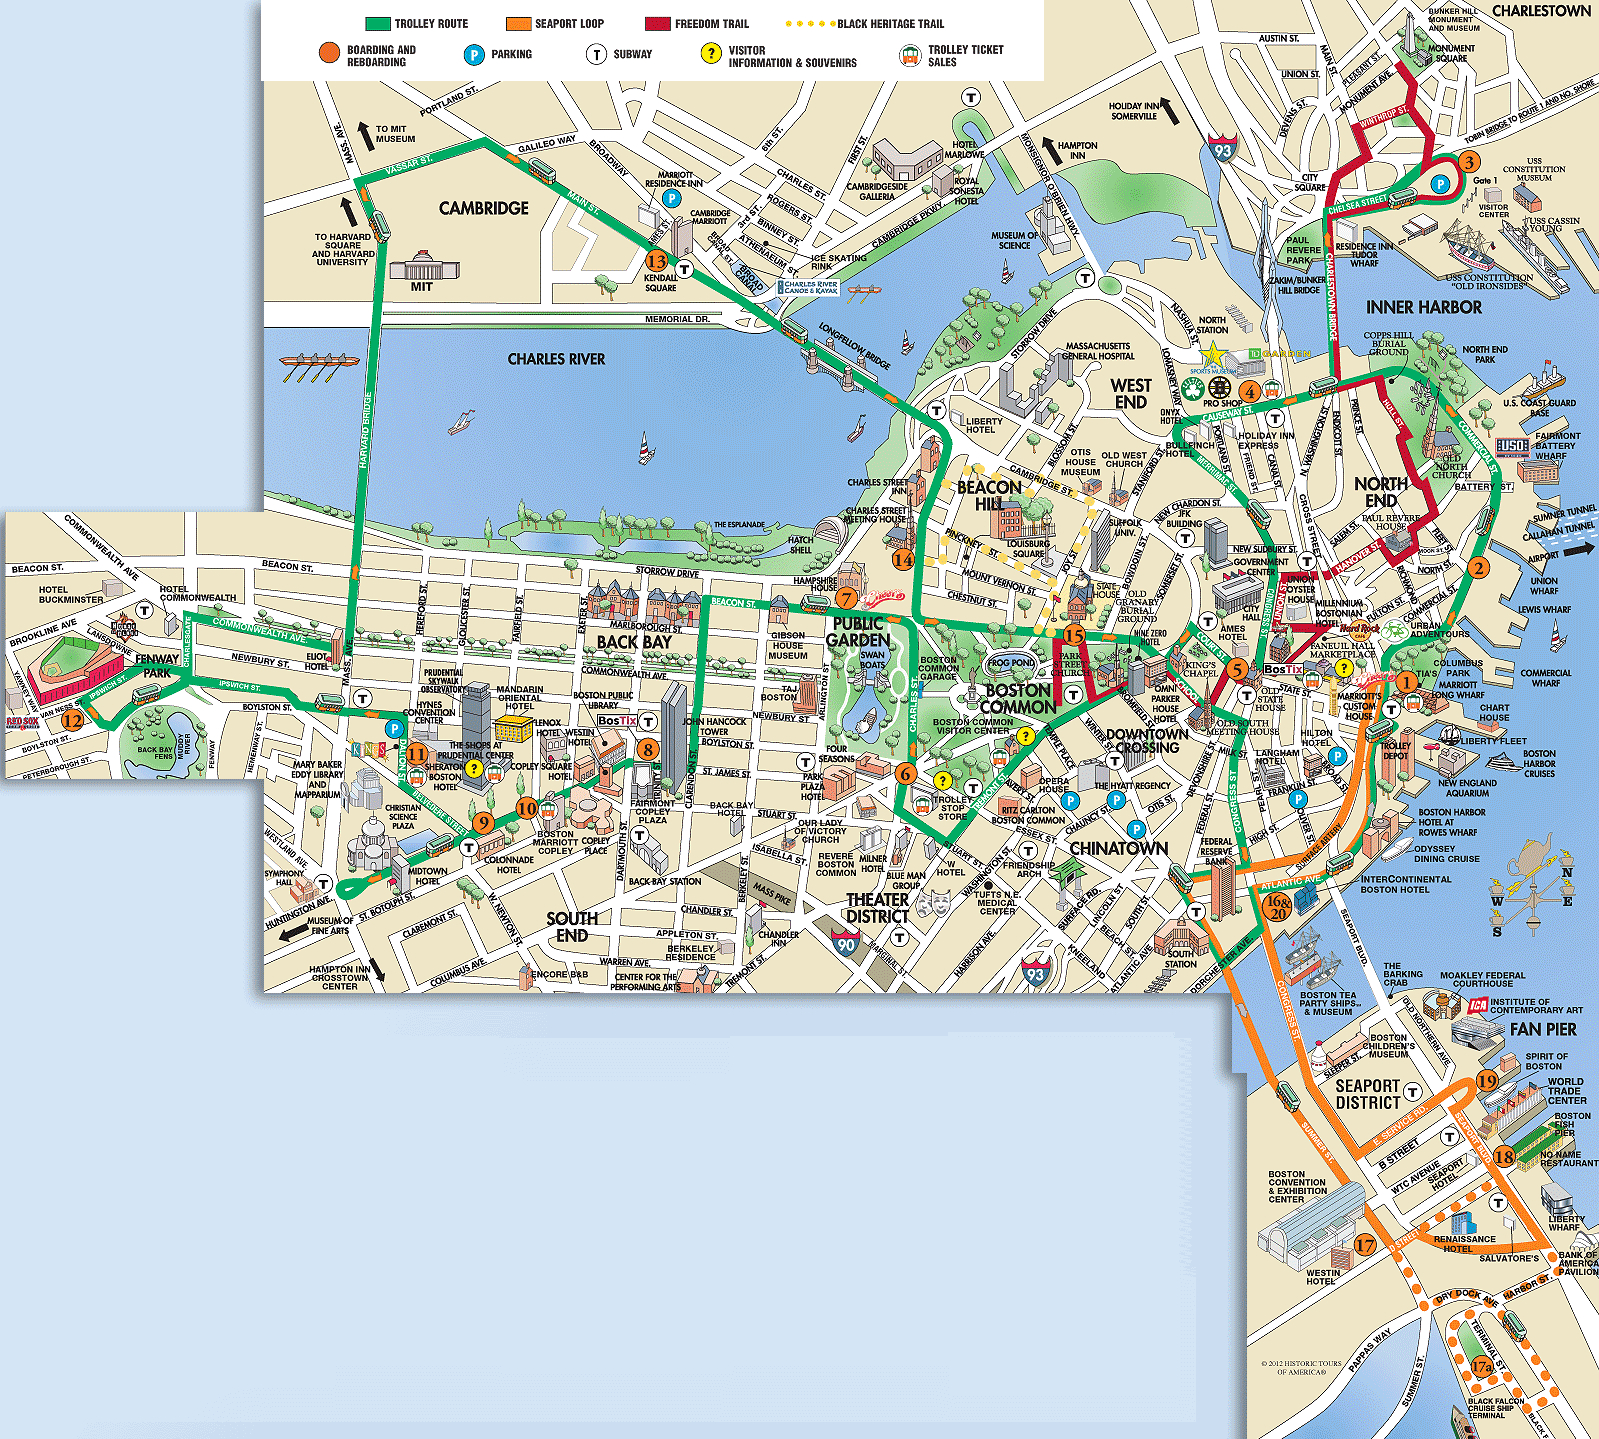 excursion-bosten-itineraire-tramway-arrets-multiples